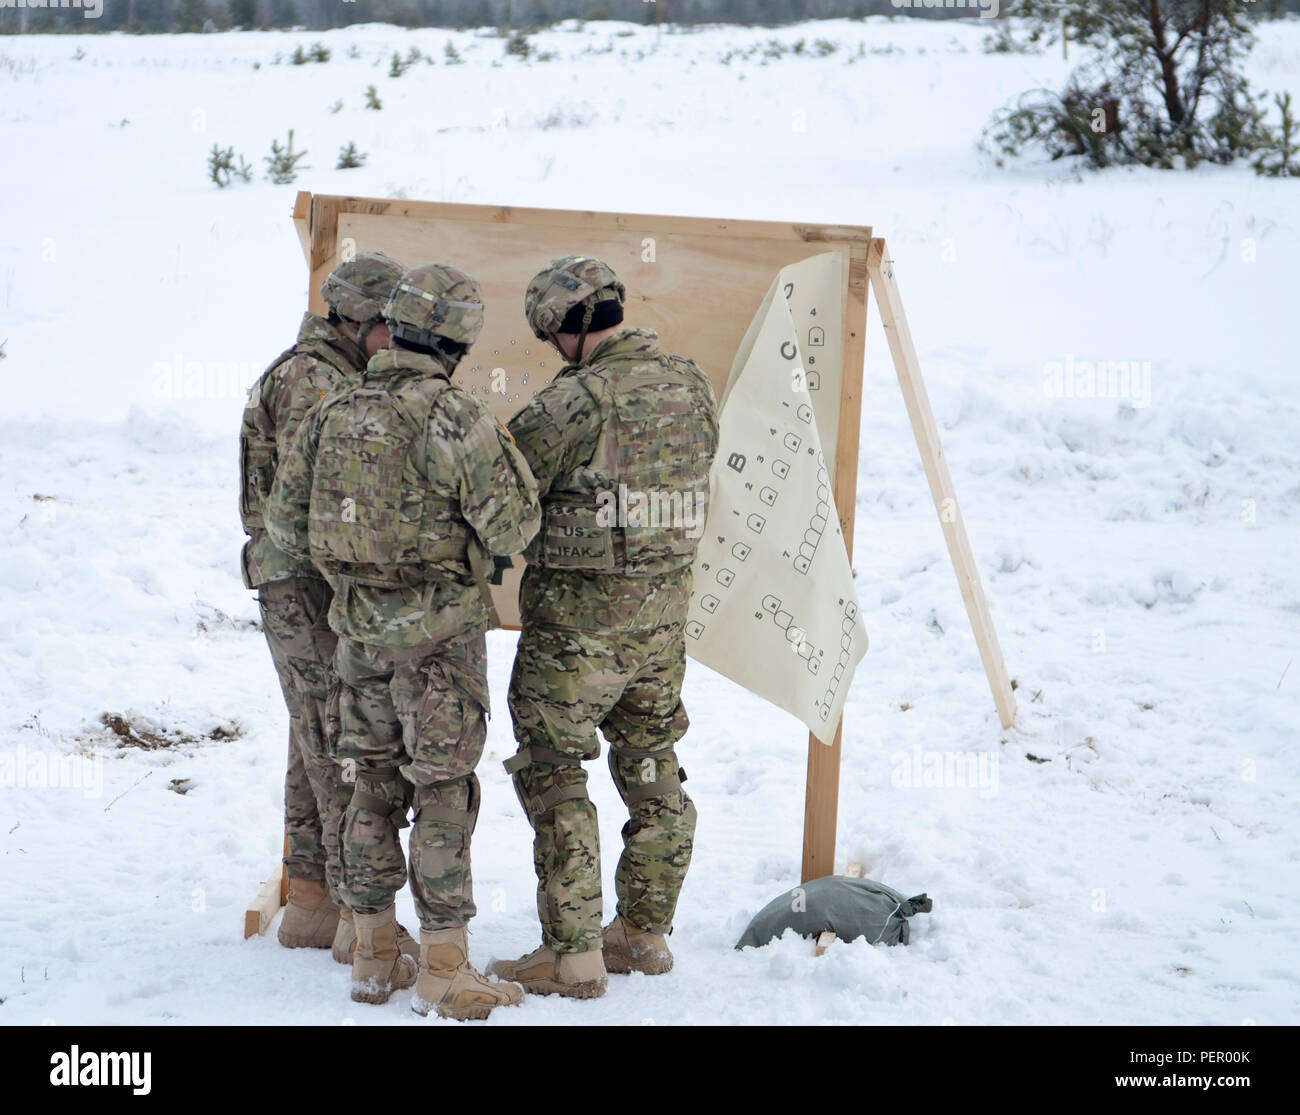 Soldiers of 3rd Squadron, 2nd Cavalry Regiment, stationed at Vilseck, Germany, work together to set up a target for the M240 machine gun range during a training exercise at Adazi Training Area in Latvia, Jan. 25, 2016. (U.S. Army photo by Staff Sgt. Steven Colvin/Released) - Stock Image